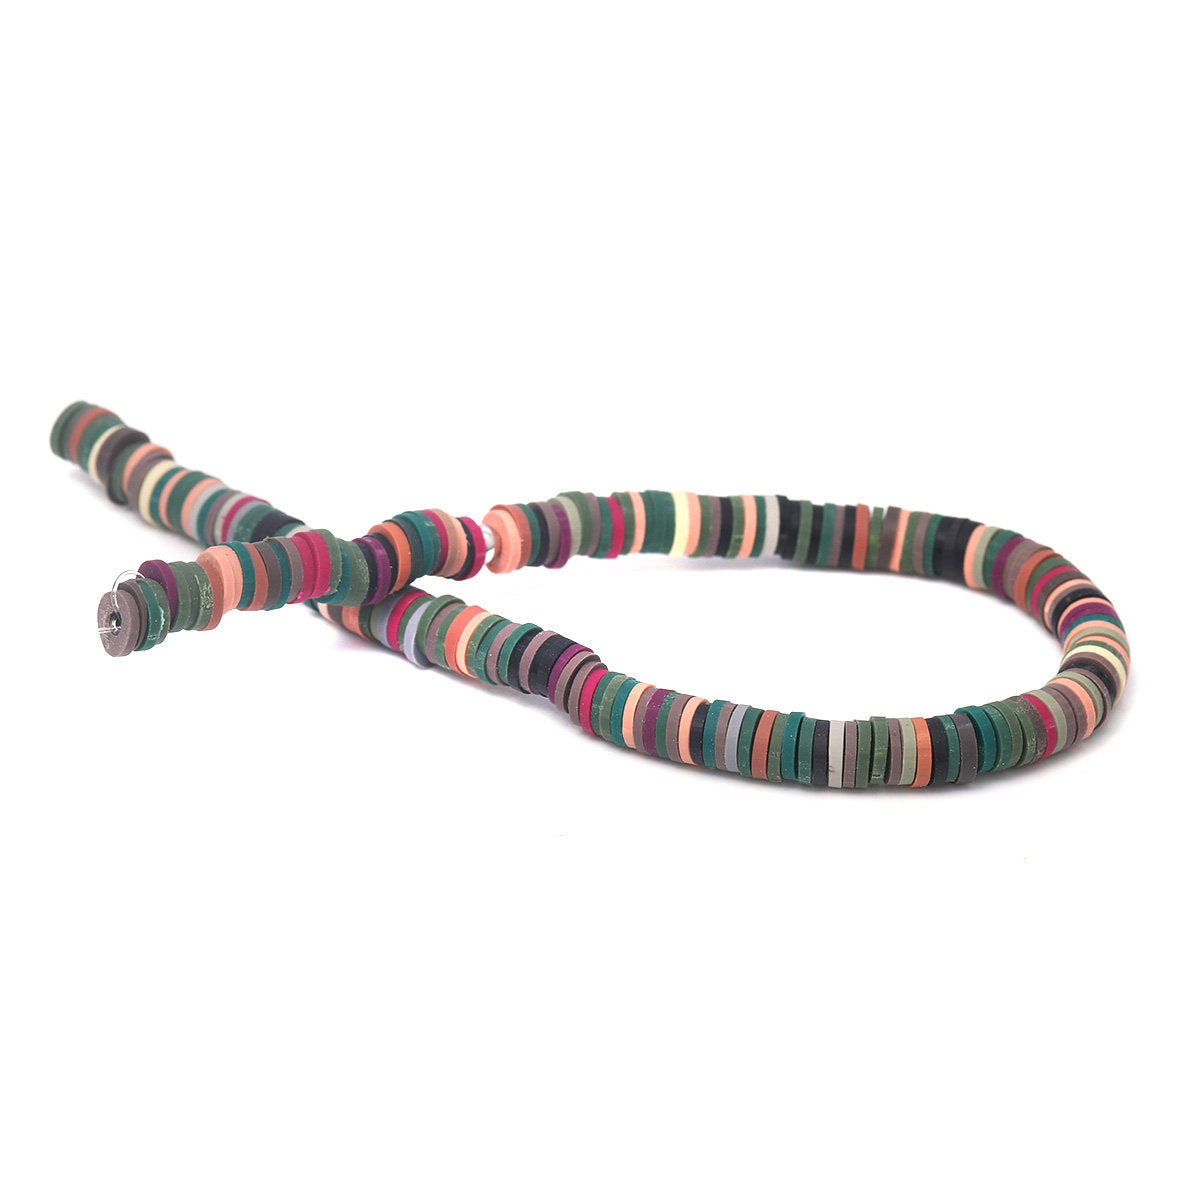 Heishi Beads 6mm (One Strand 380 - 400 Beads) - Polymer Clay Bead - Mixed Color - Fimo Bead - African Beads (217784)